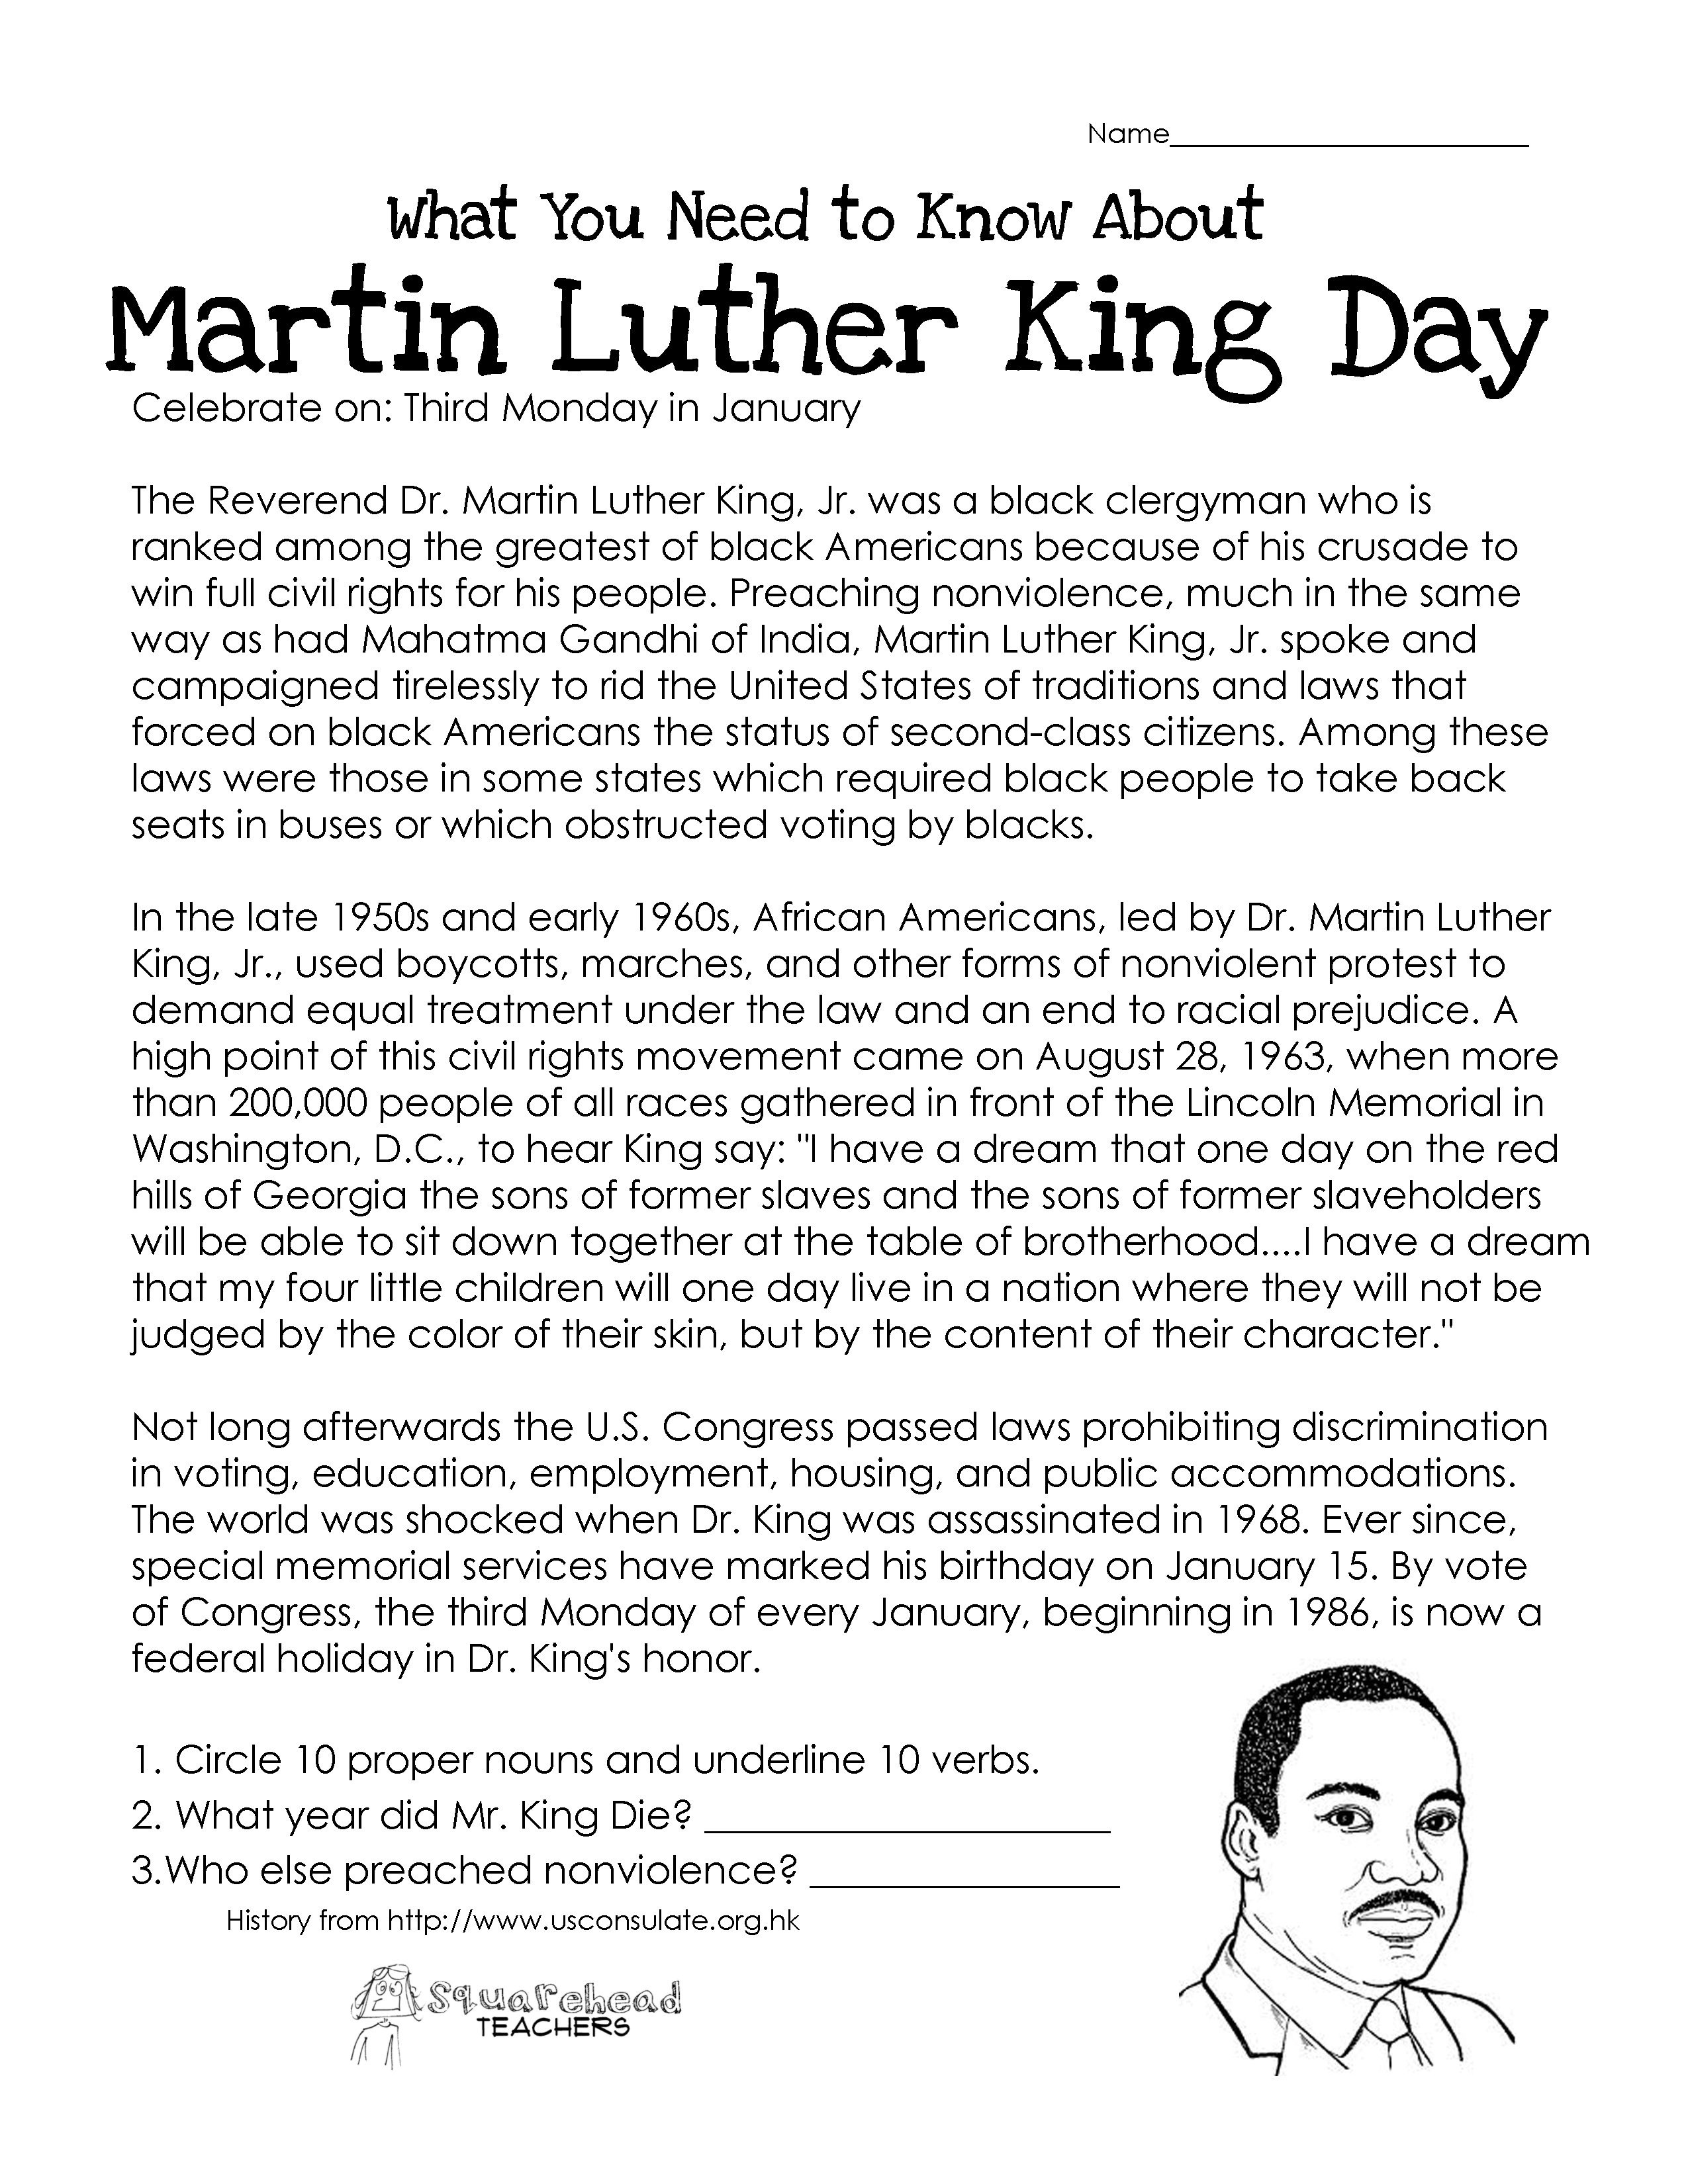 This Free Worksheet About Martin Luther King Day Covers The Basic - Free Printable Martin Luther King Jr Worksheets